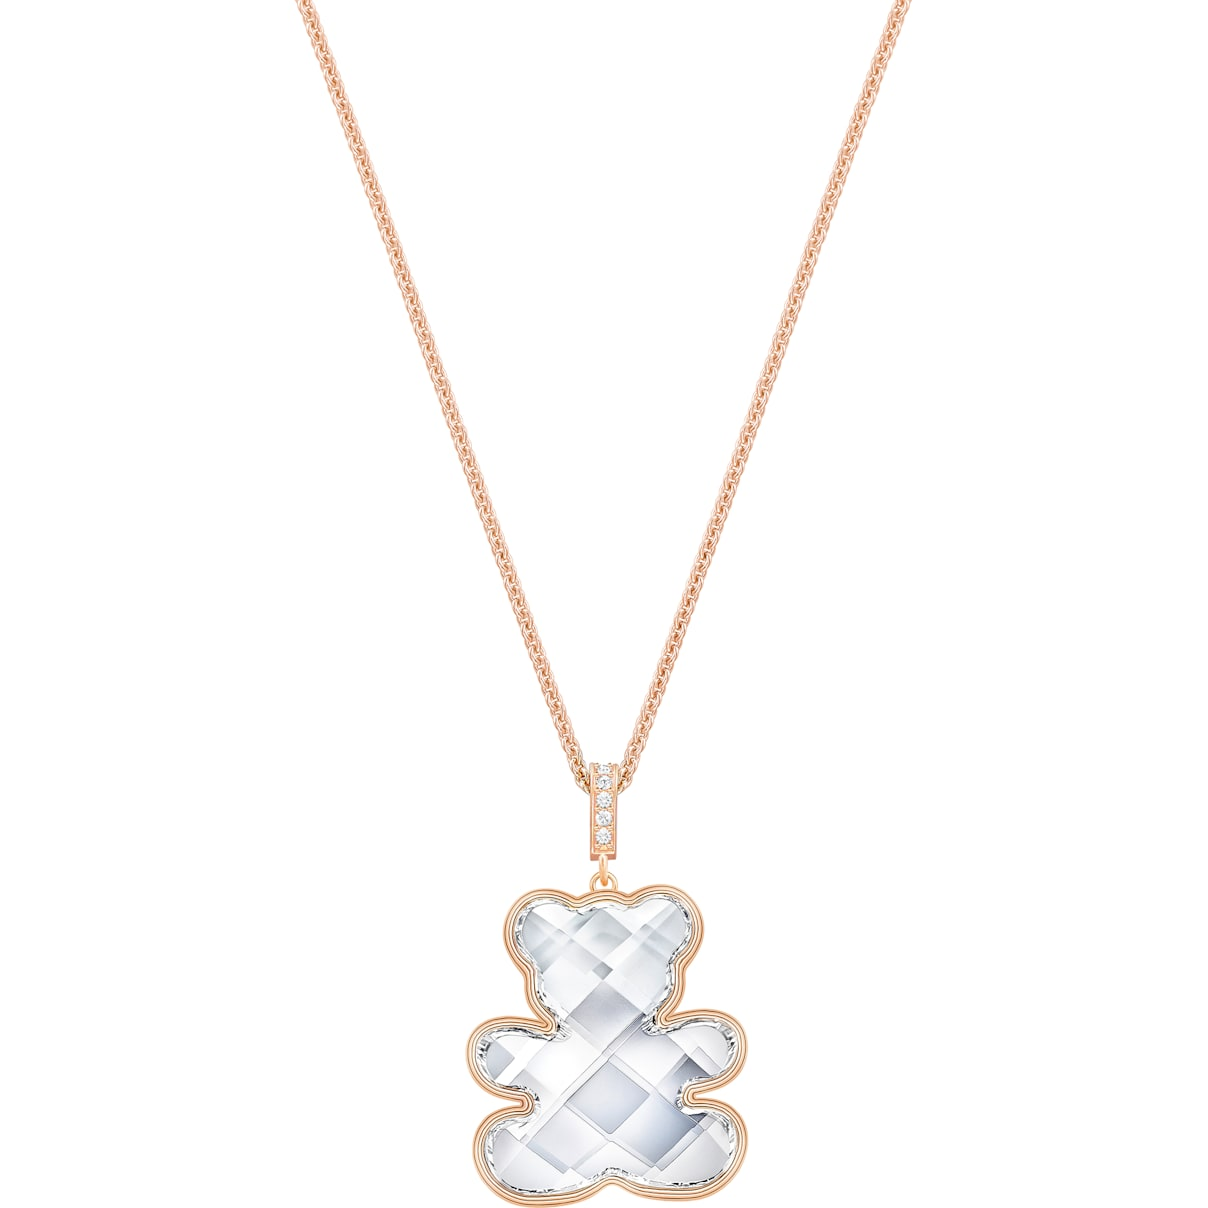 Swarovski Teddy Pendant, White, Rose-gold tone plated